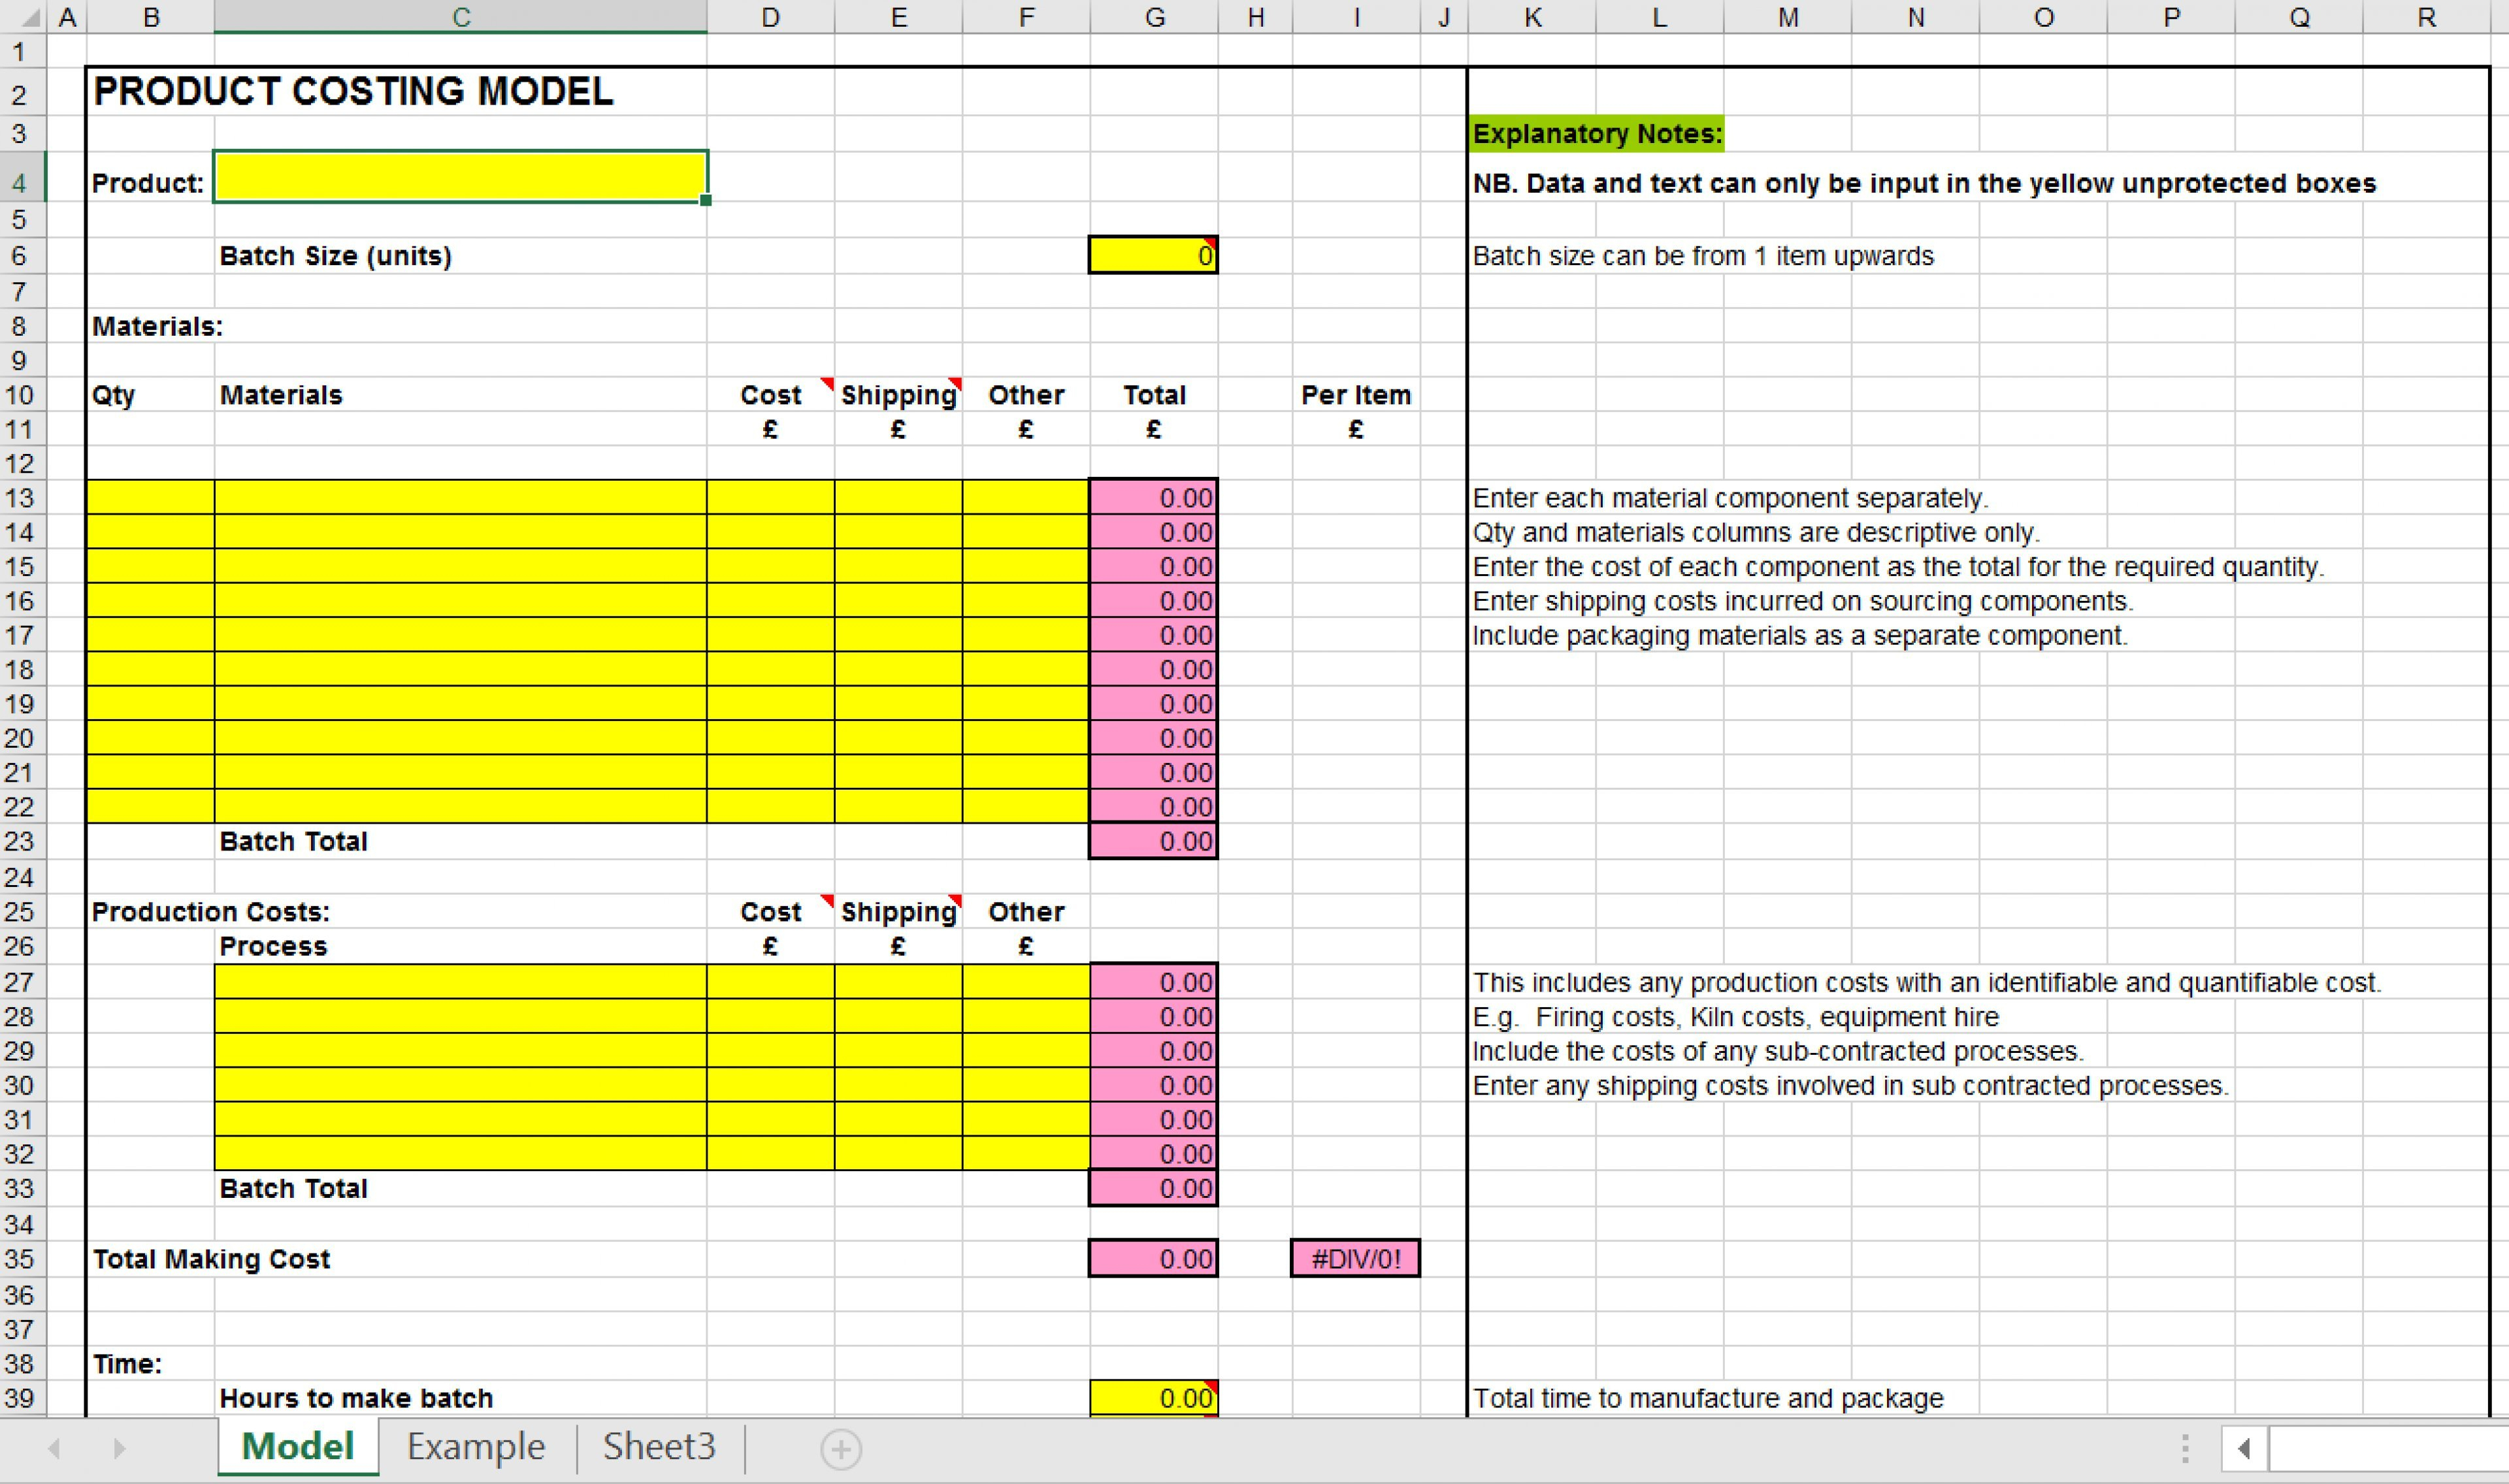 Product Pricing Spreadsheet Templates Inside Pricing Your Product: Product Costing Excel Template  Eloquens